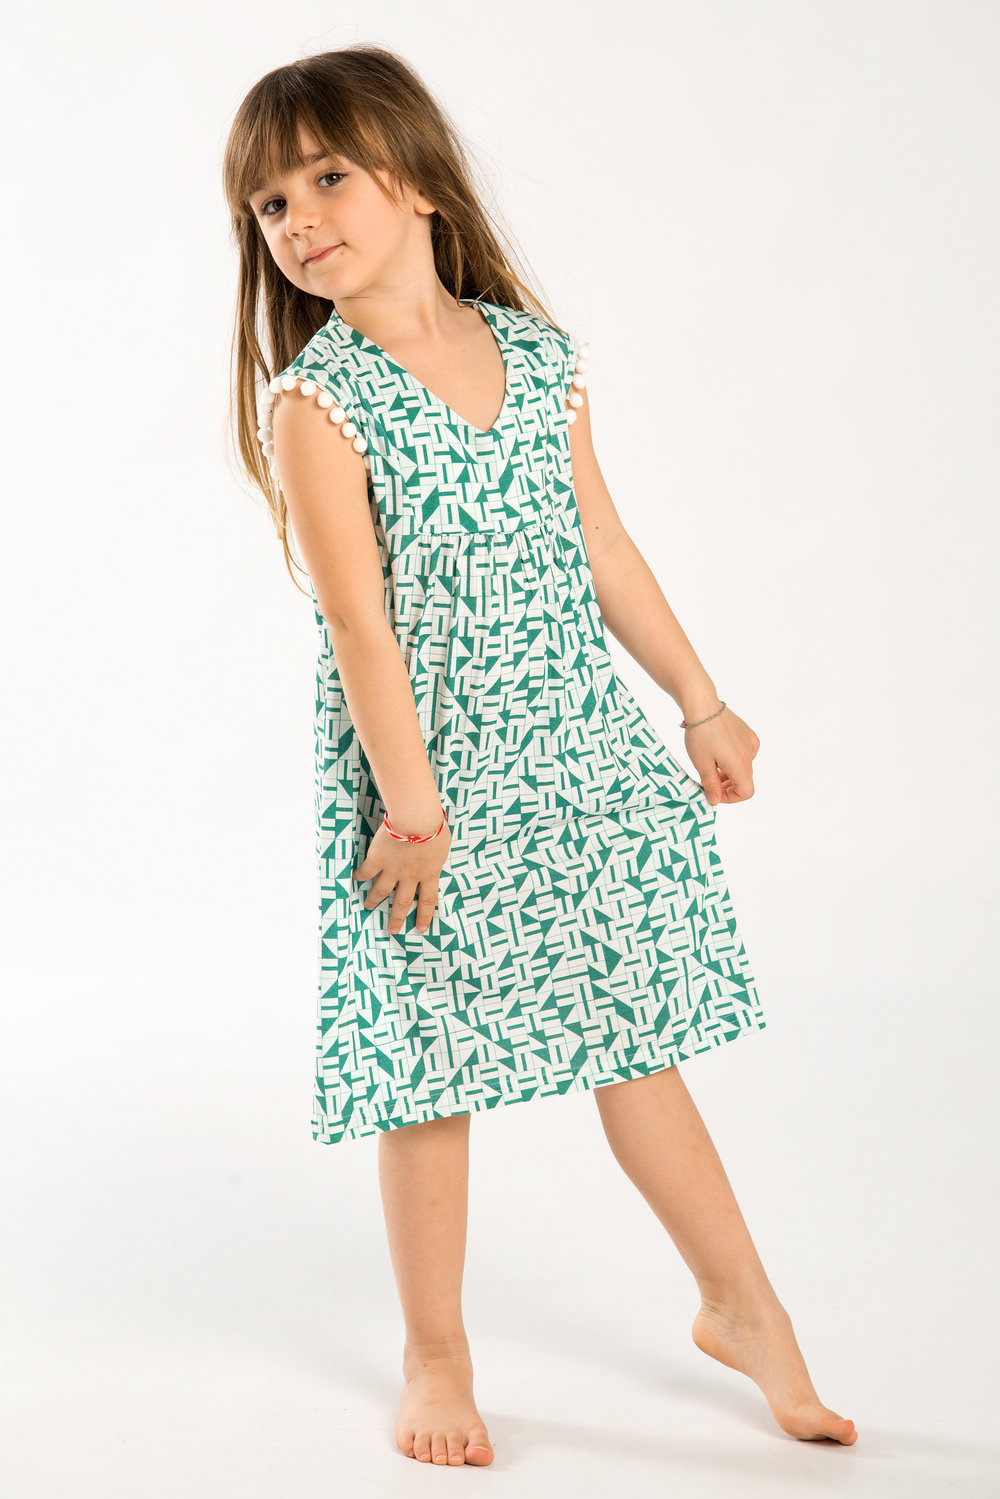 athenian-1960-on-kids-dress-green-front.jpg